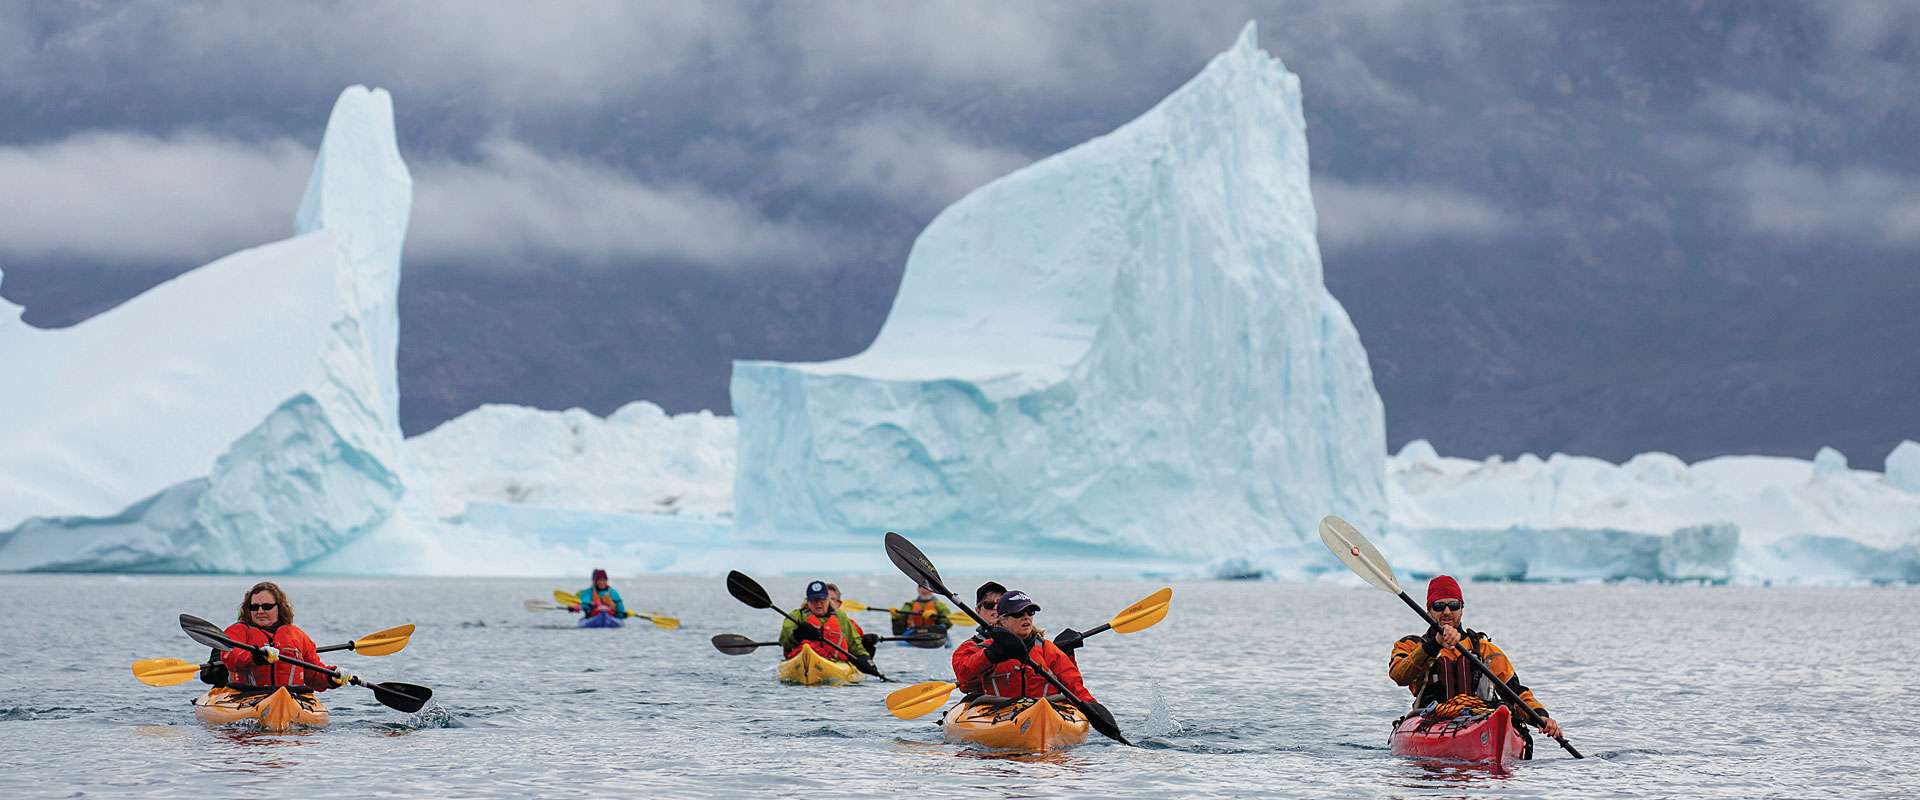 Explore Svalbard By Luxury Boat